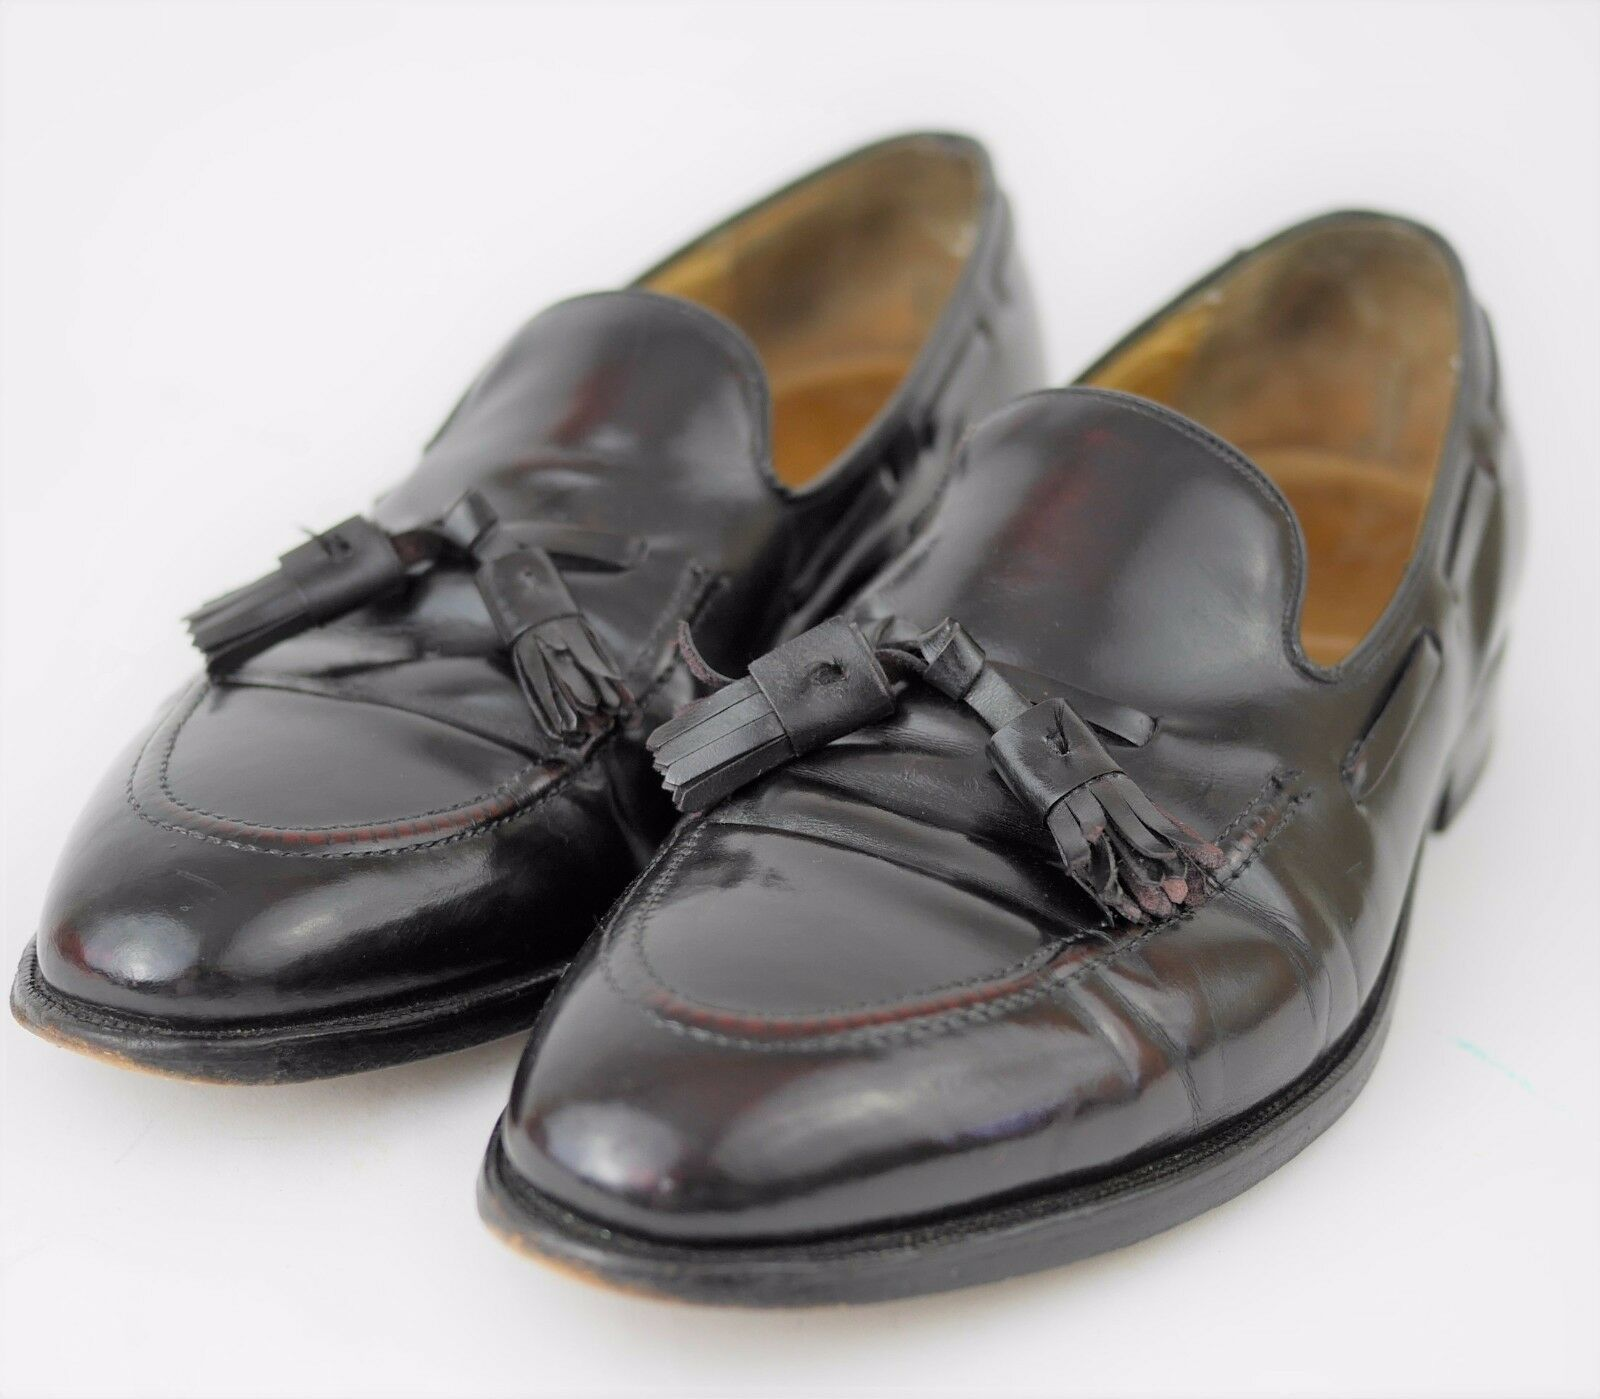 JOHNSTON & MURPHY Aristocraft Dark Brown Burgundy Leather Tassel Loafers MENS 10